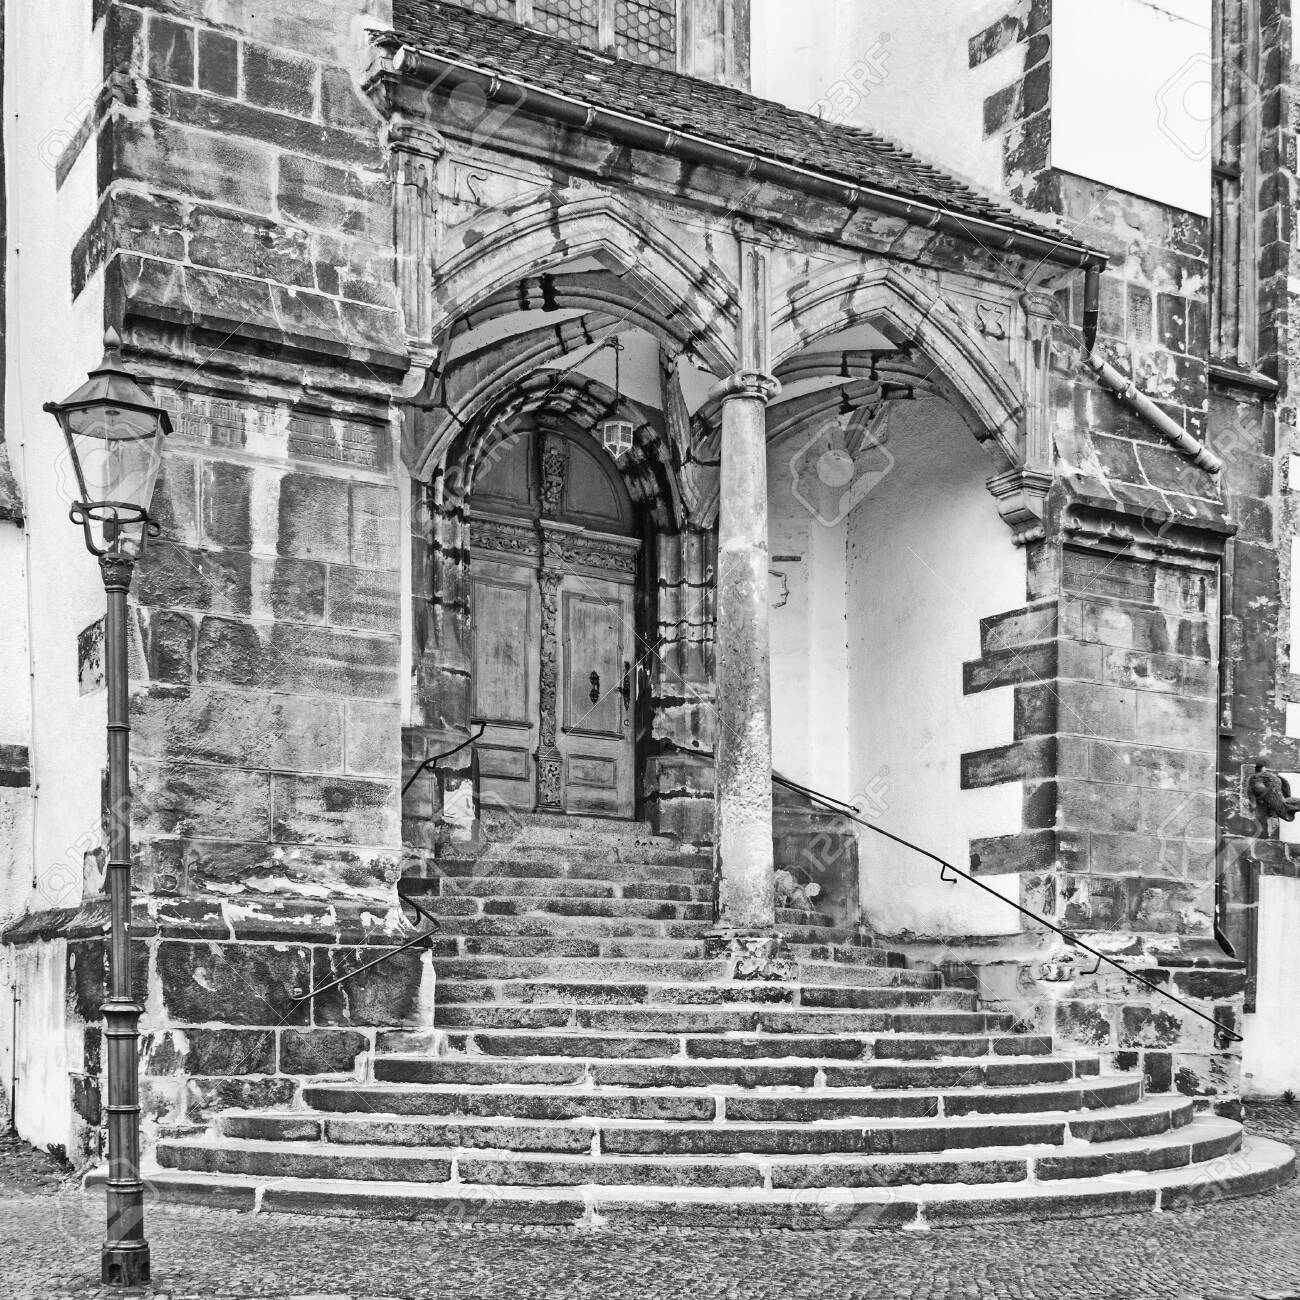 Stairs of the St. Peter and Paul church at Goerlitz, Germany - 153178173